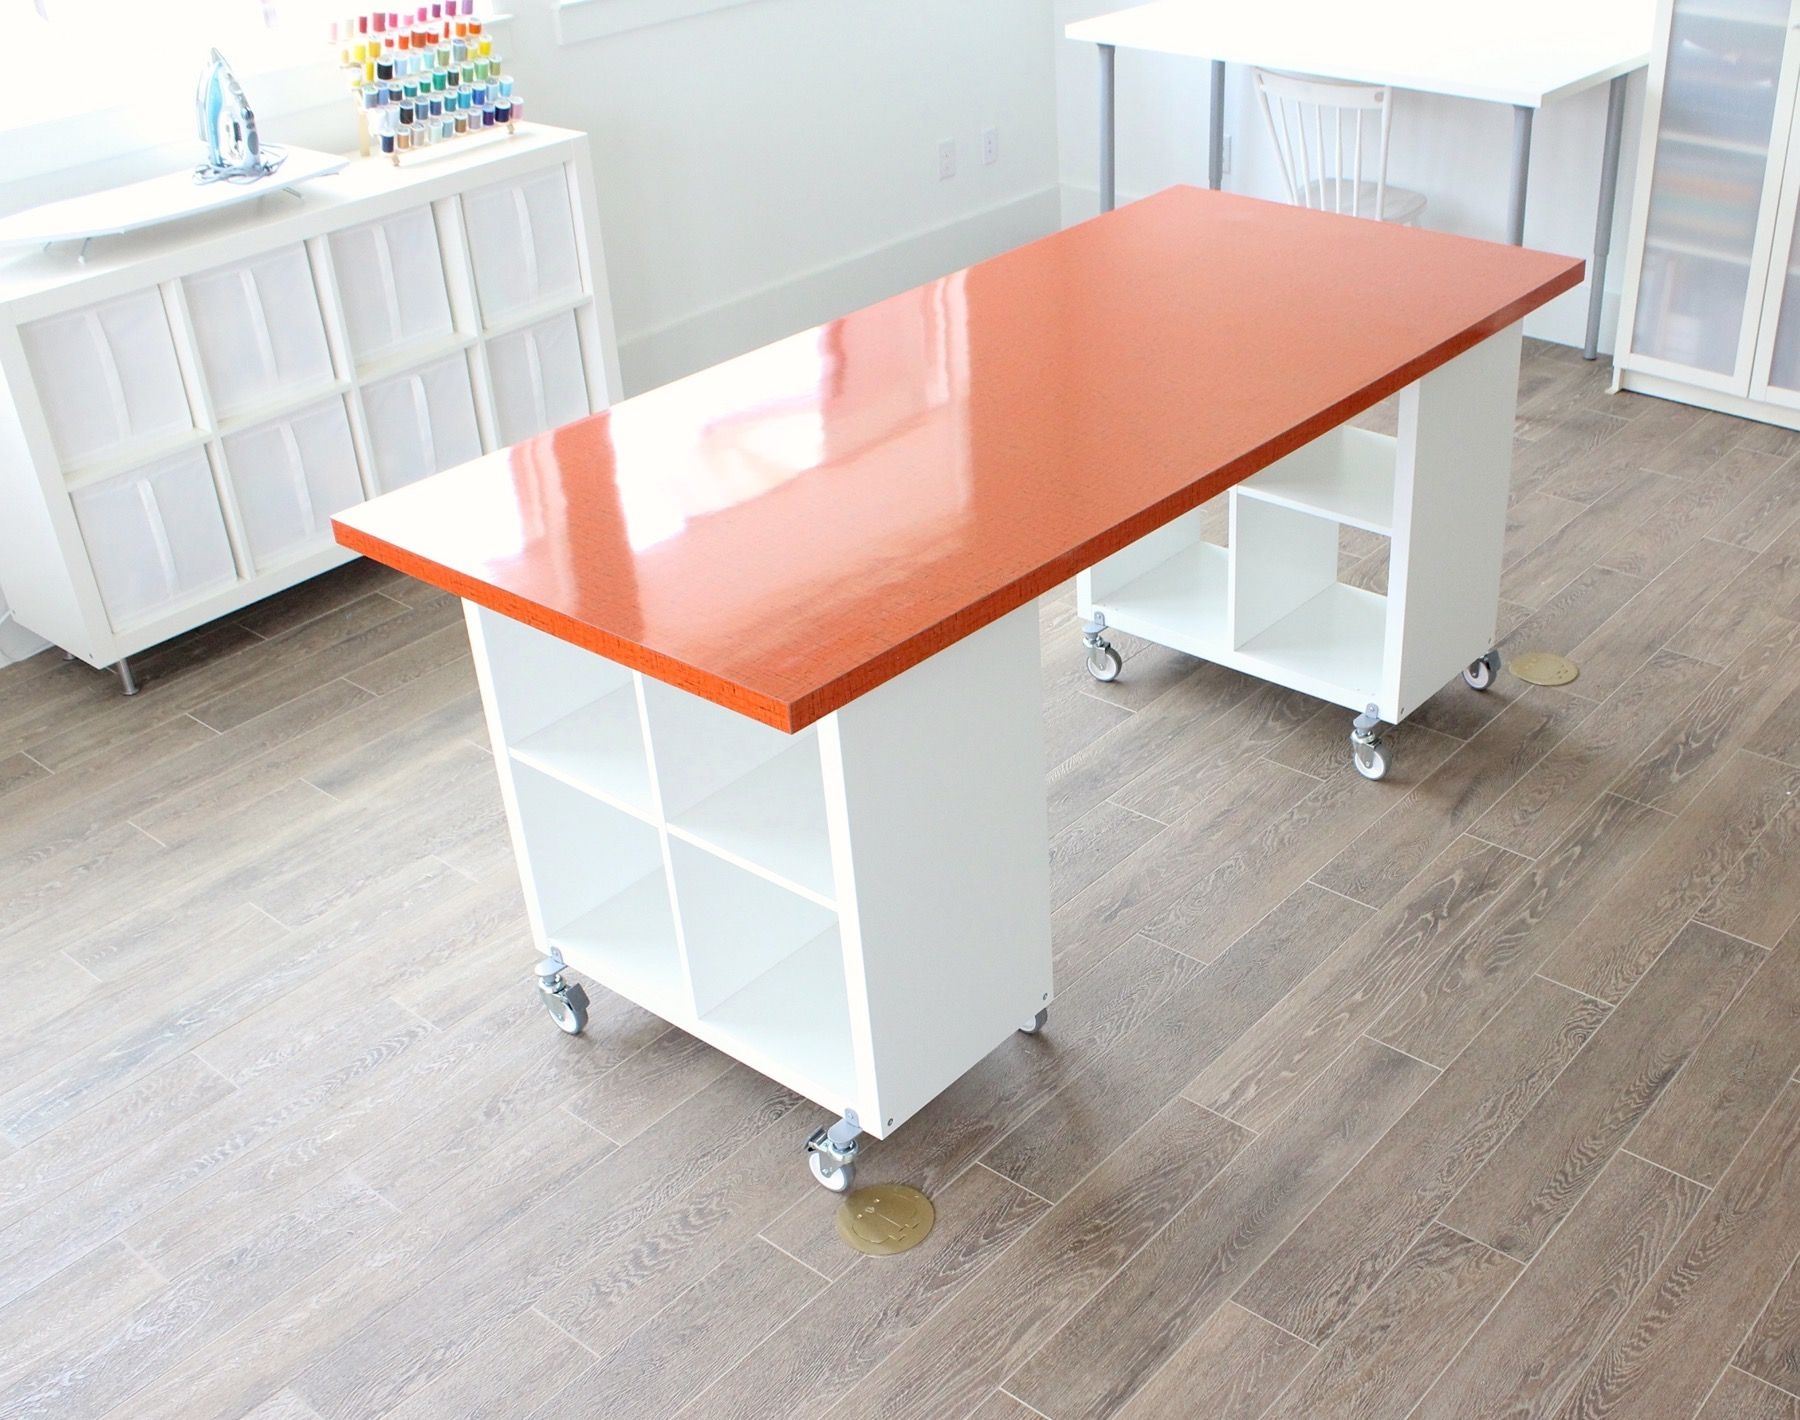 Building a new home the Formica craft table – MADE EVERYDAY